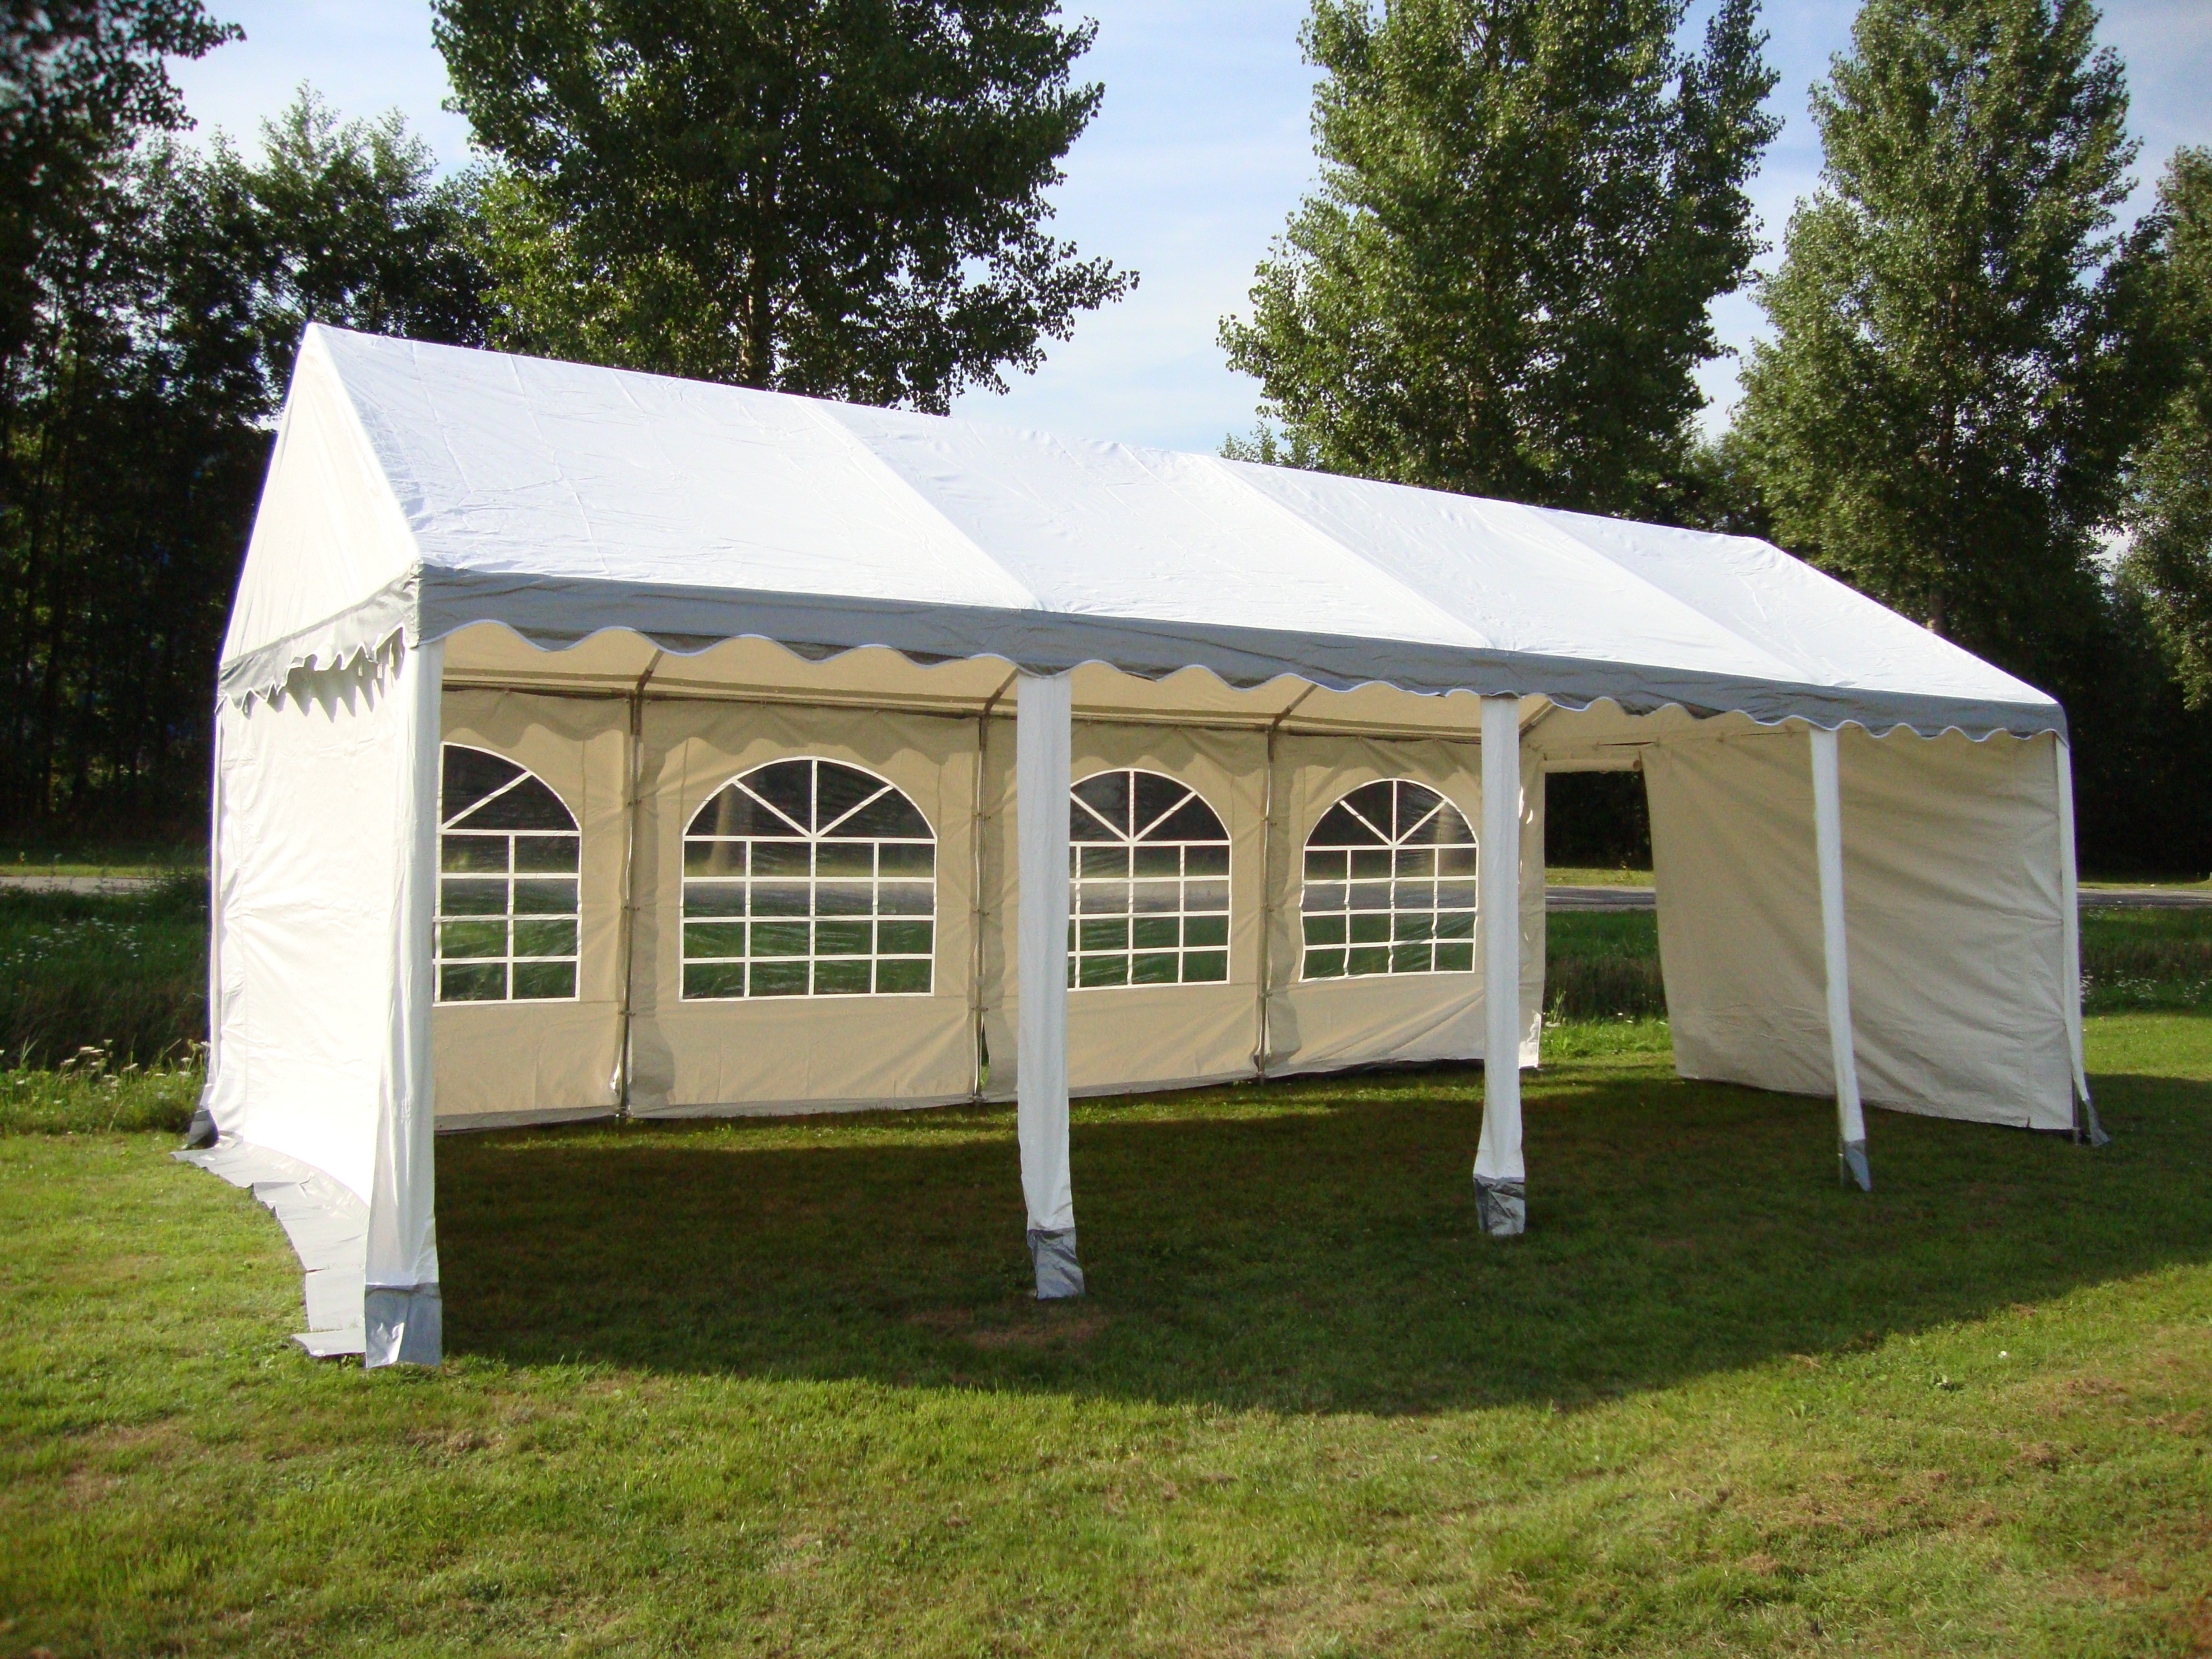 Partytent 4 x 8 meter axitraxi for Wohnzimmer 4 x 8